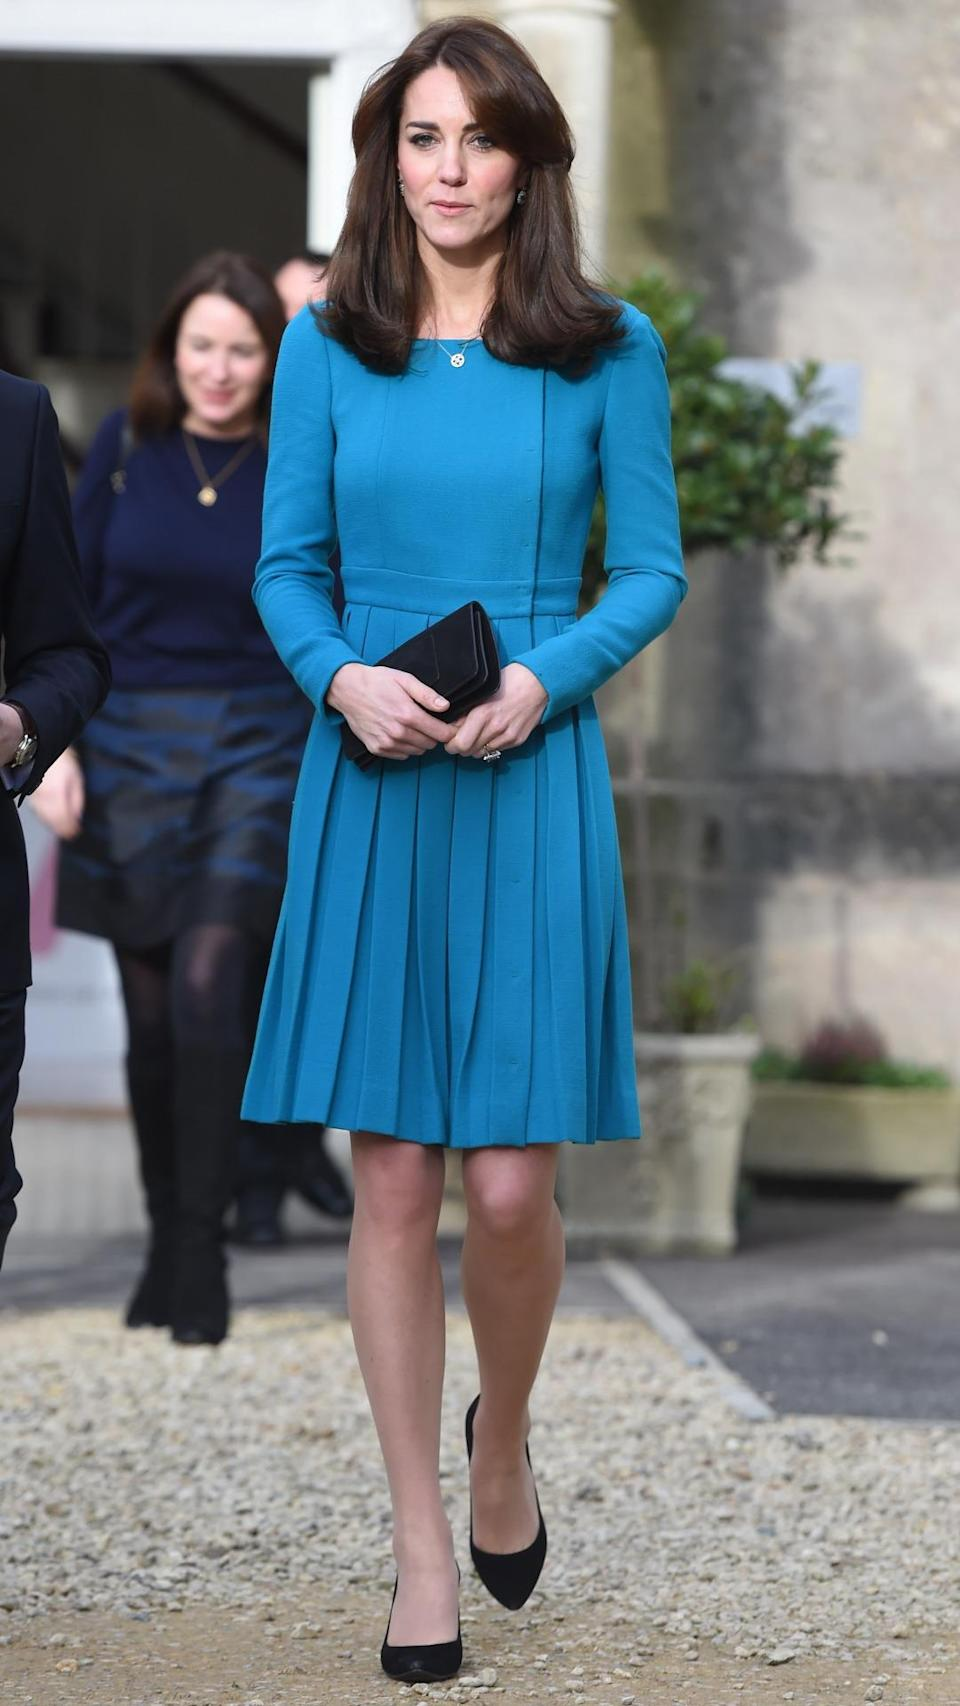 <p>On a charity visit, Kate wore a bespoke teal Emilia Wickstead dress with pleated skirt. She carried her prized Mulberry bag and finished with a pair of Stuart Weitzman heels. </p><p><i>[Photo: PA]</i></p>